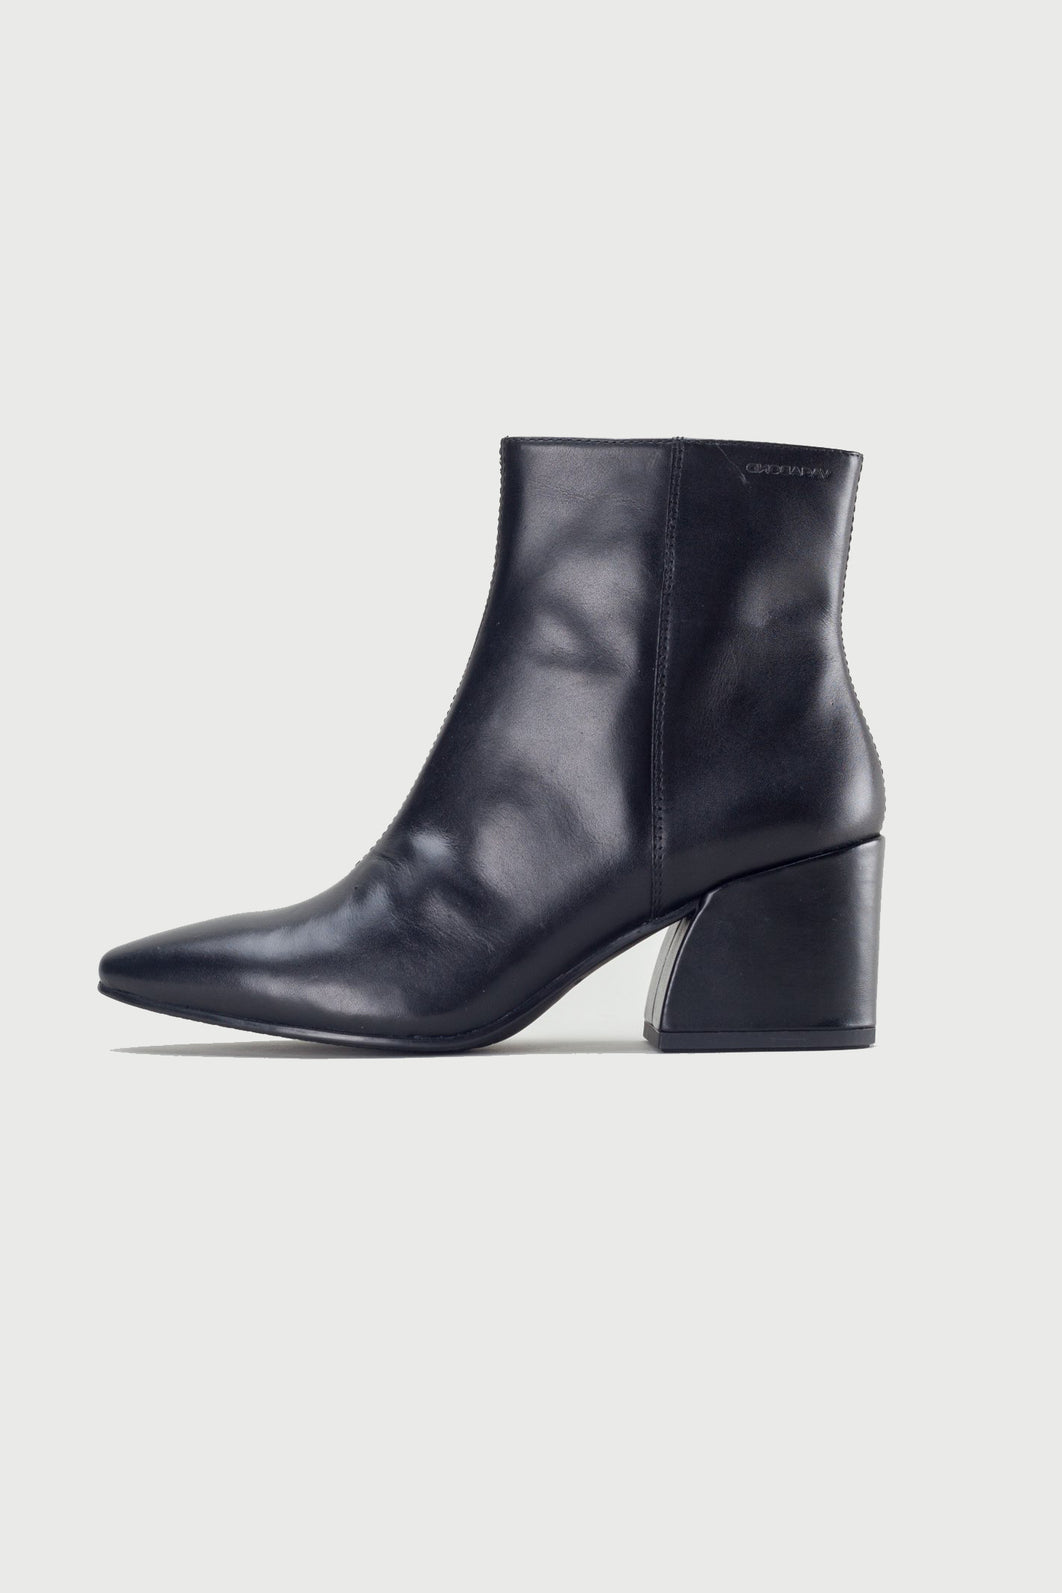 Vagabond Olivia Black Leather Boot